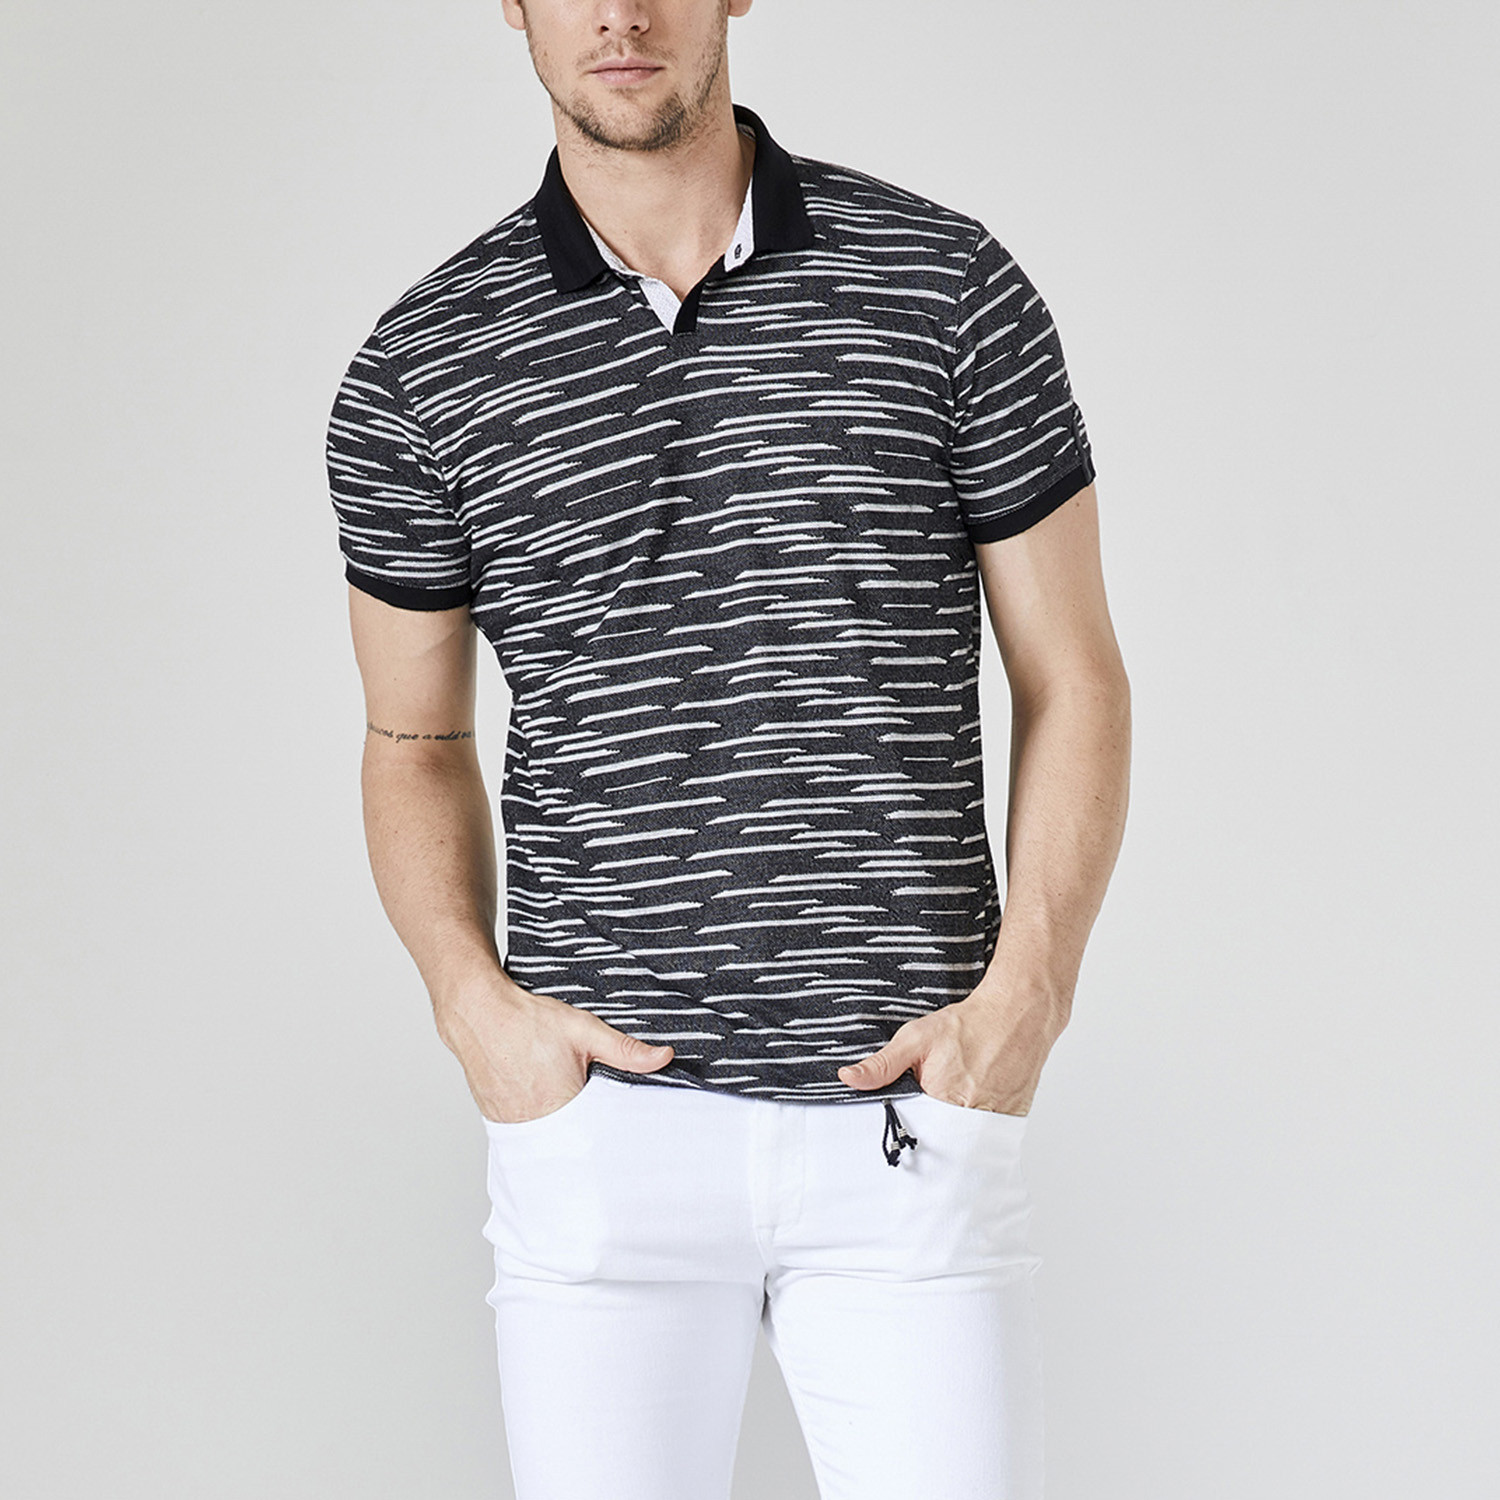 Printed Polo T Shirt Black Xs Xint Touch Of Modern